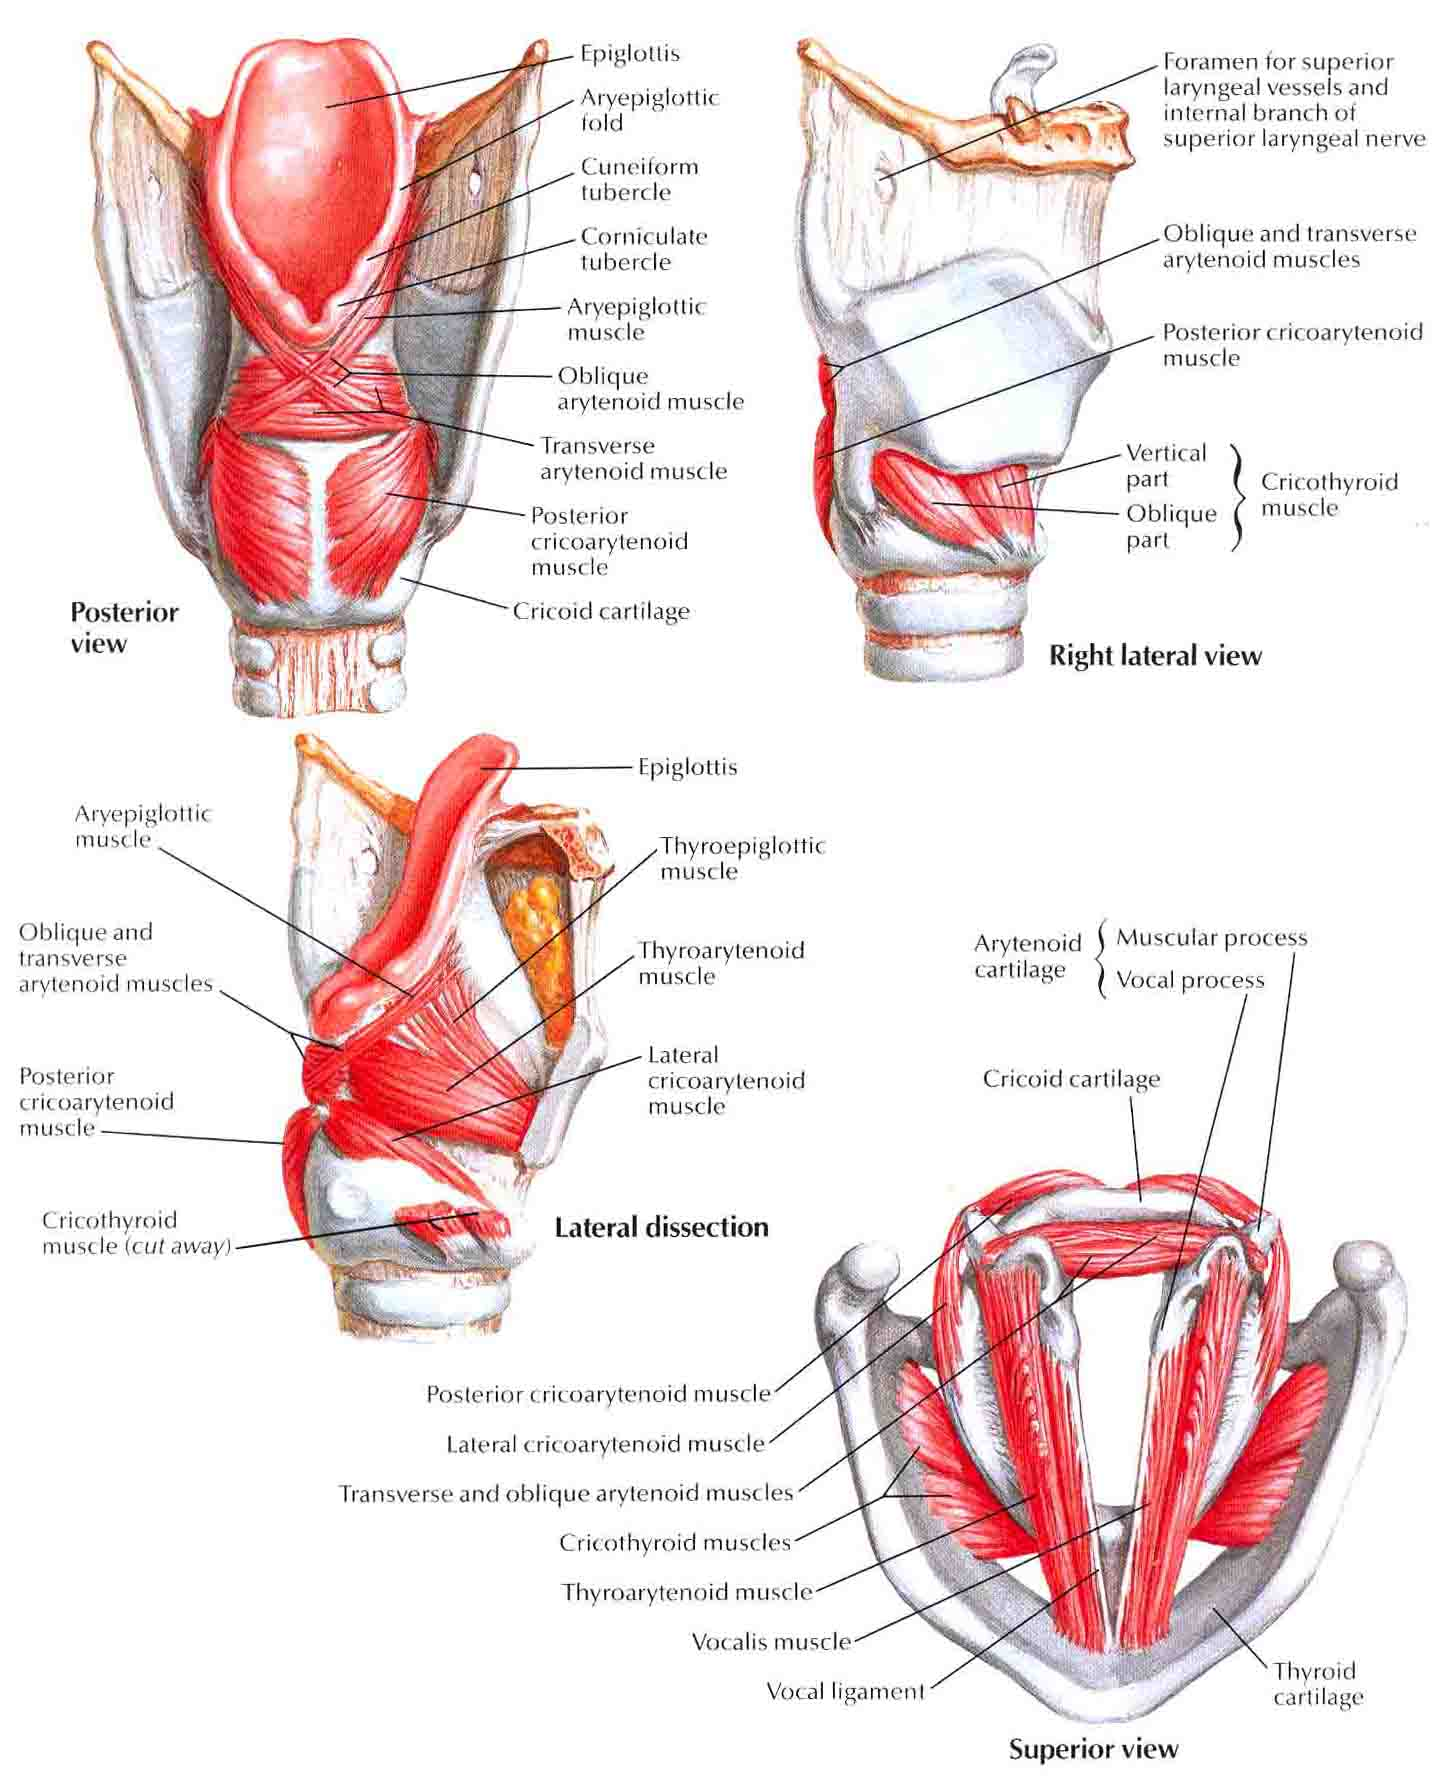 Larynx:Intrinsic muscles | RANZCRPart1 Wiki | FANDOM powered by Wikia